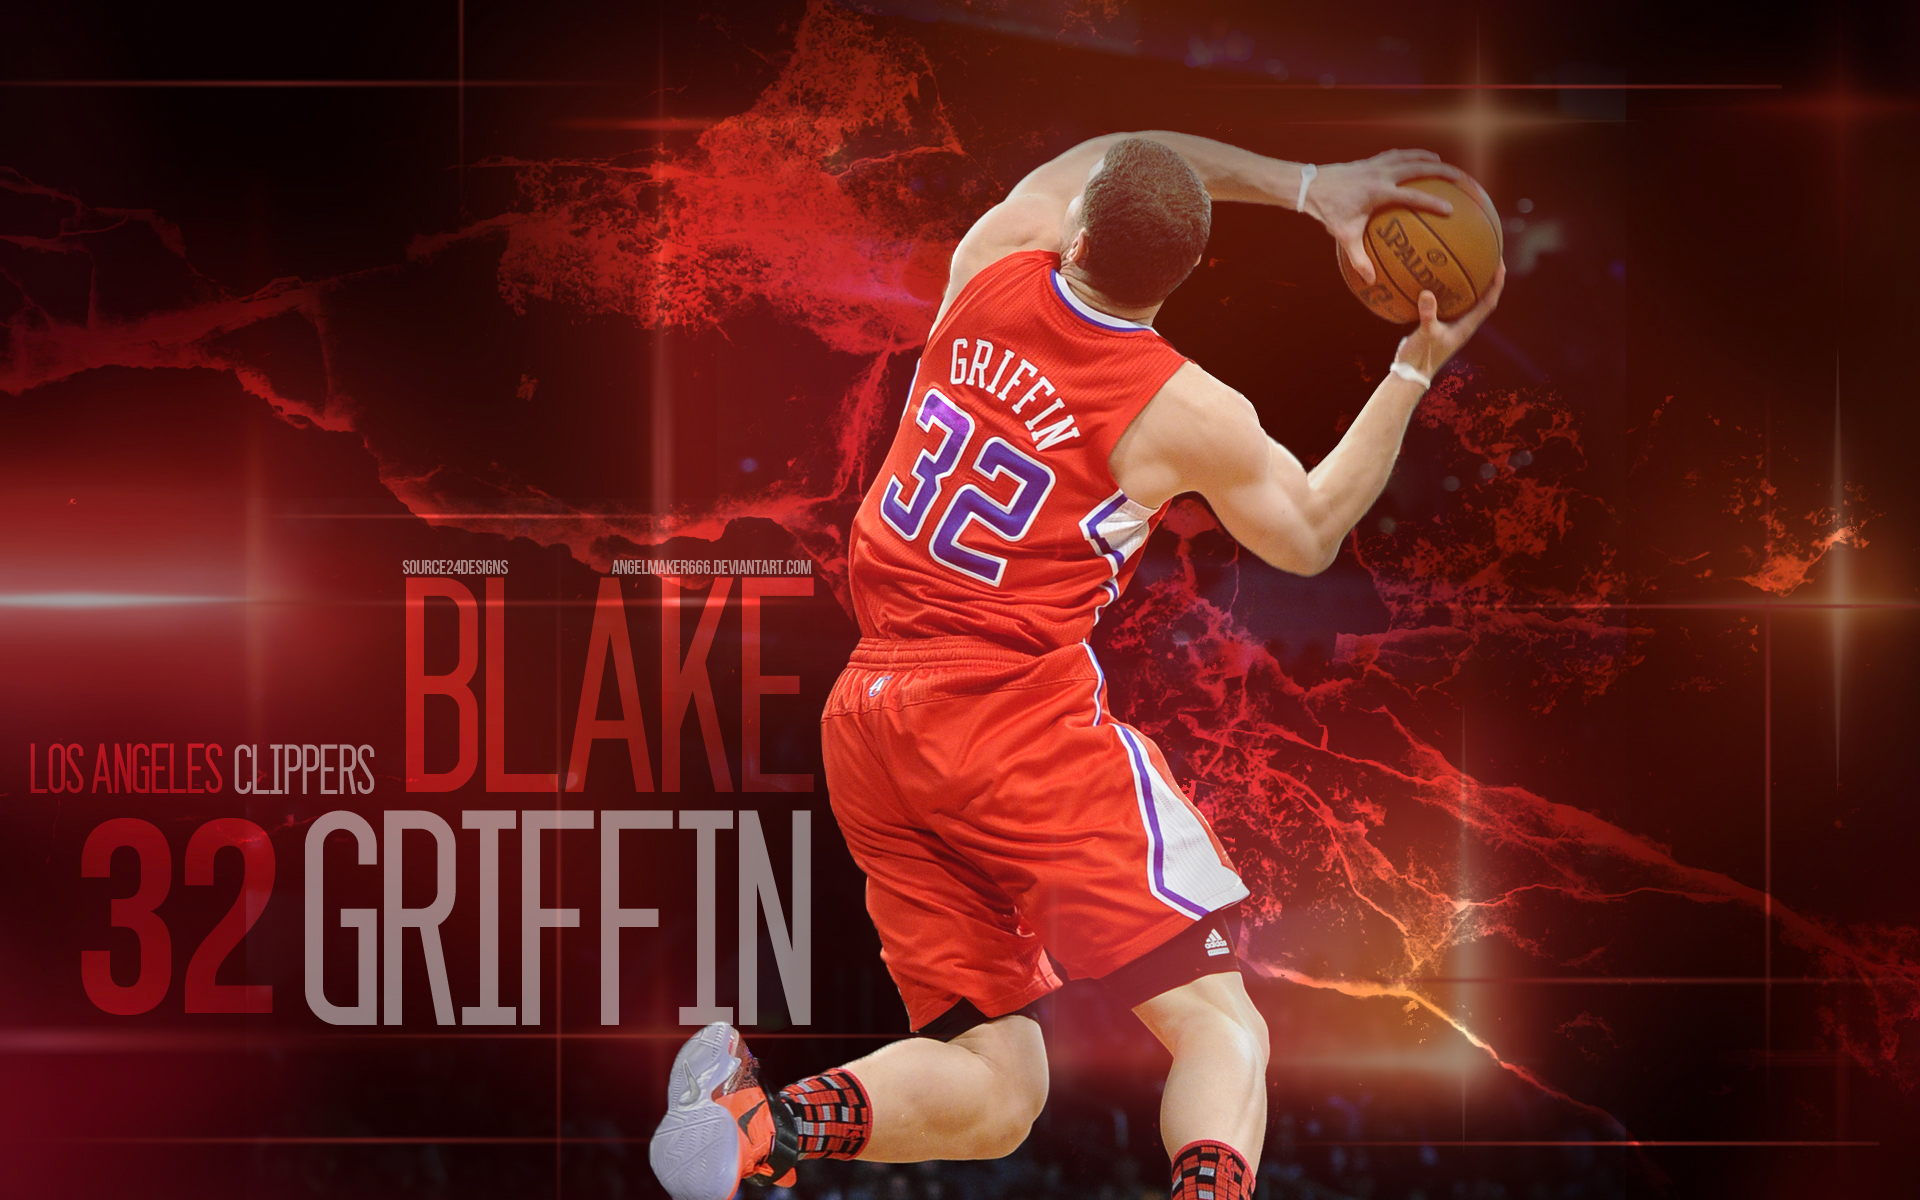 blake griffin wallpaperishaanmishra on deviantart